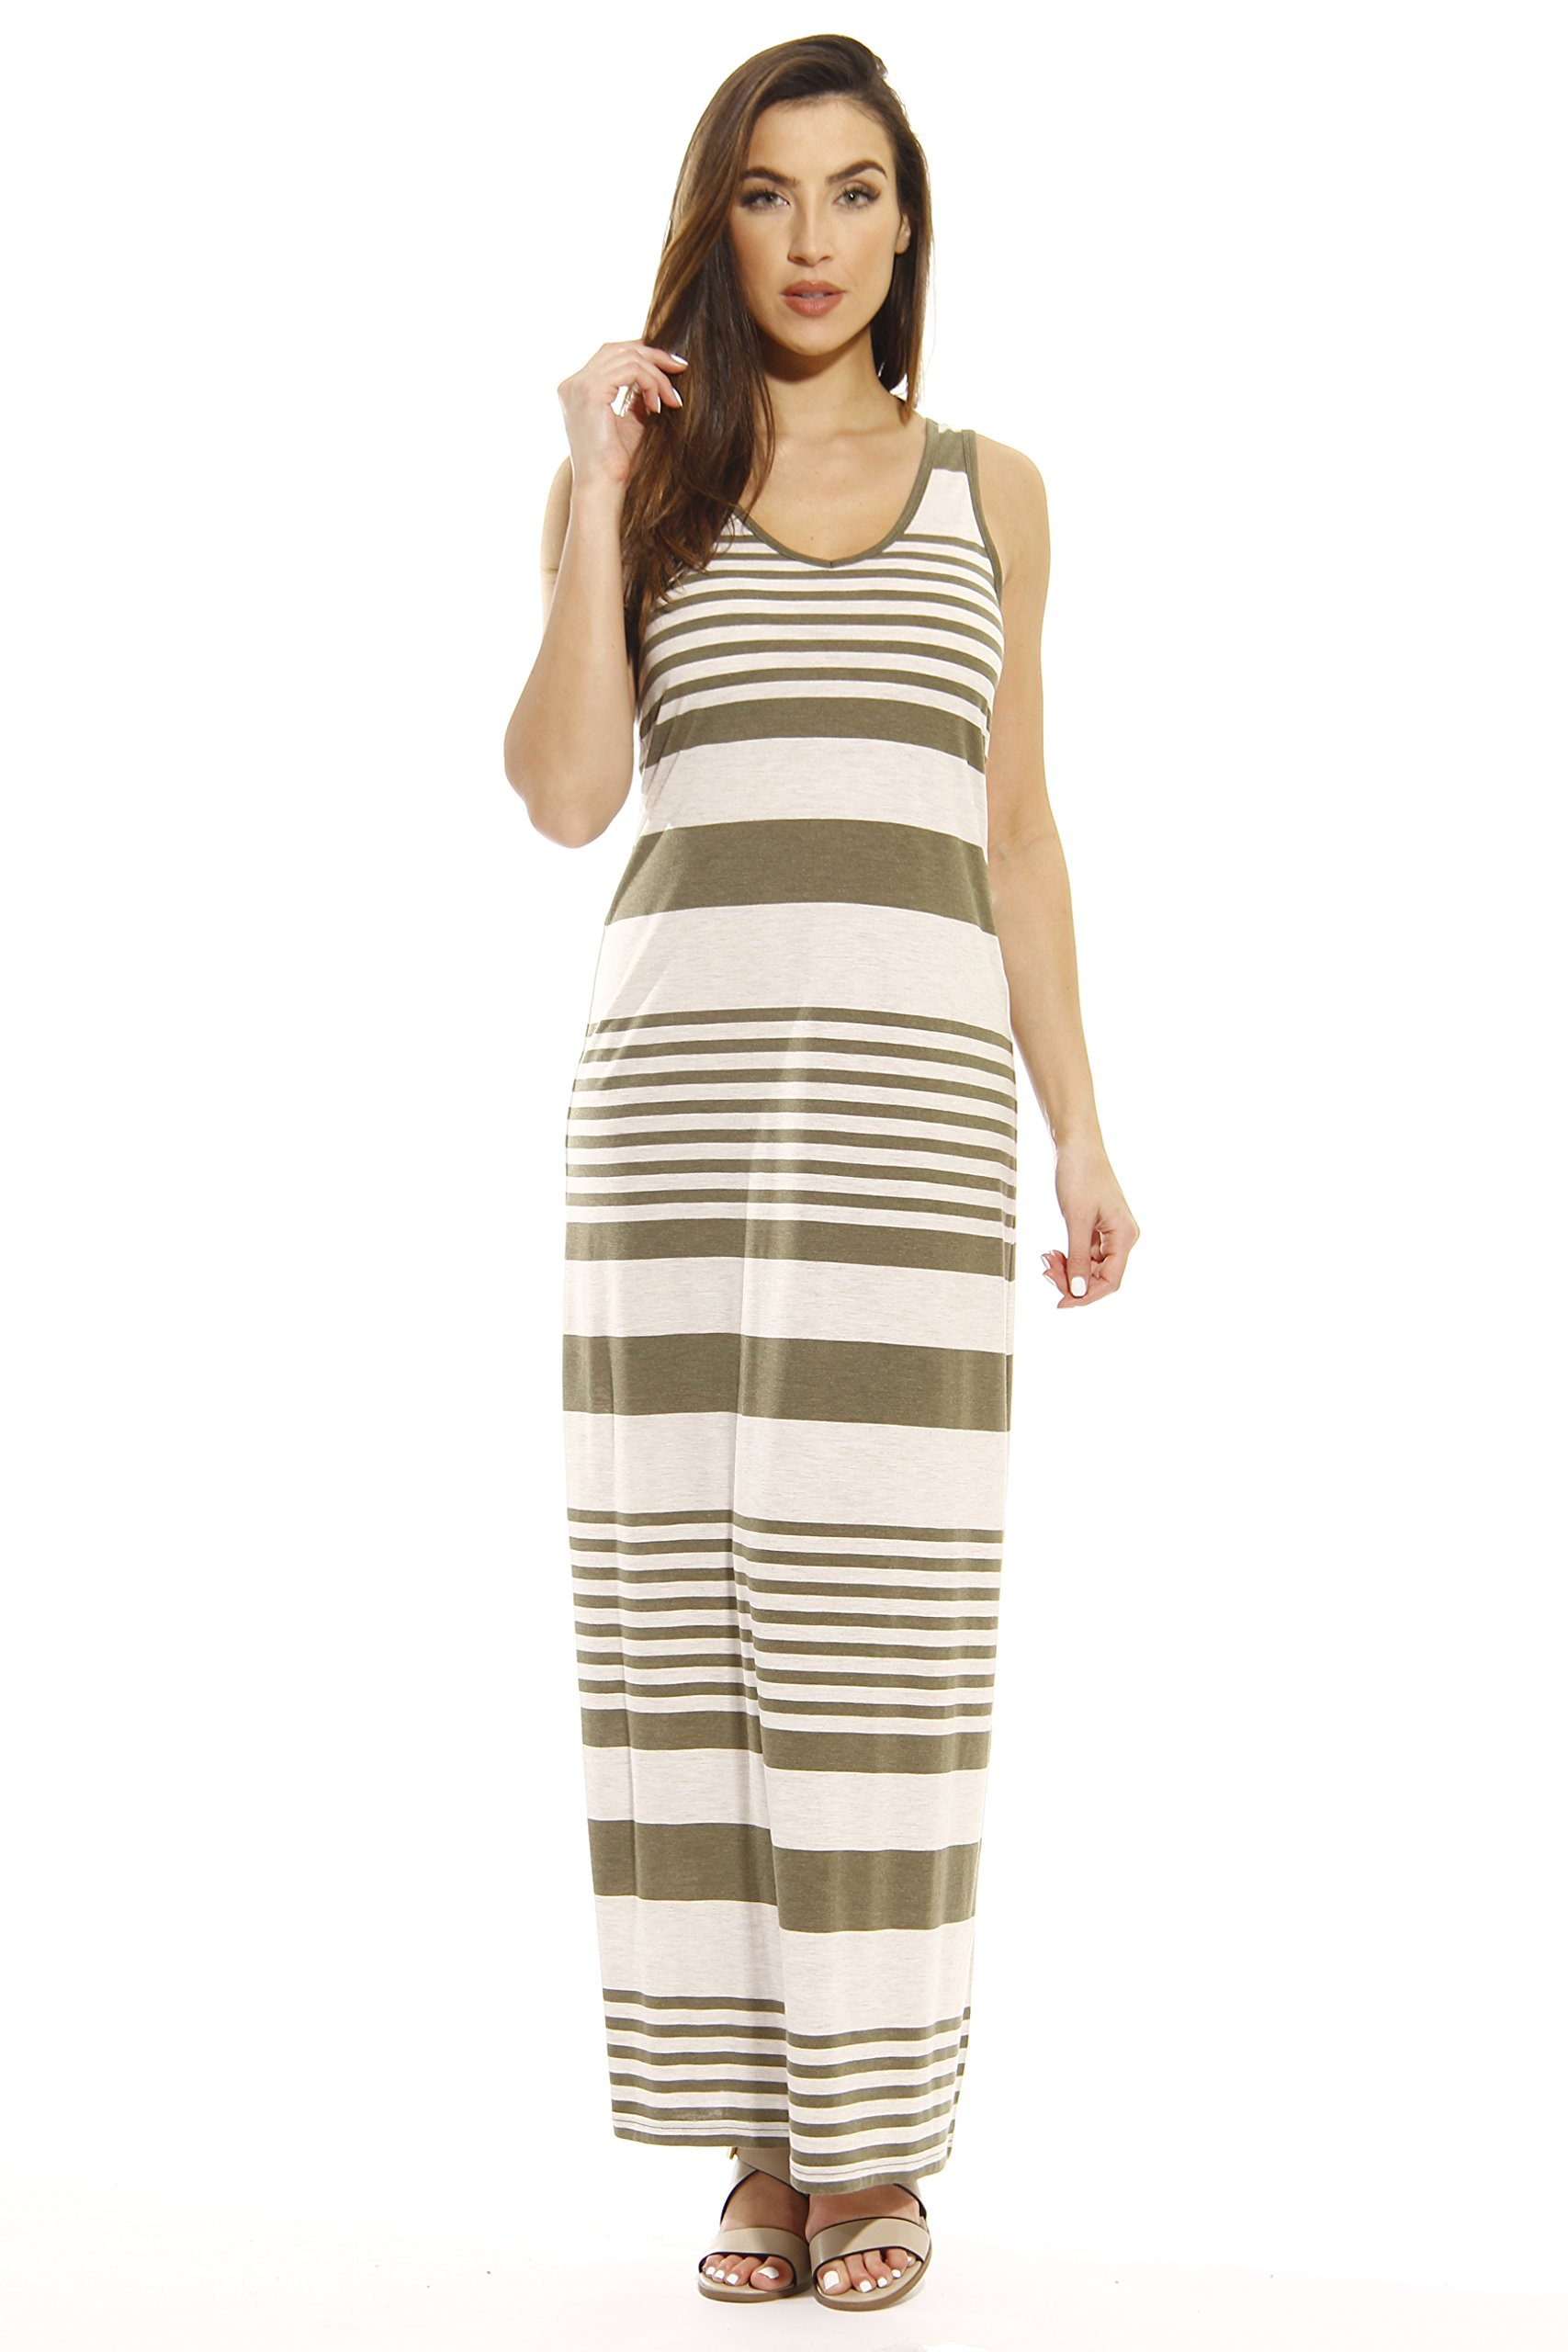 3007-138-OLVC-3X Just Love Summer Dresses / Maxi Dress by Just Love (Image #1)